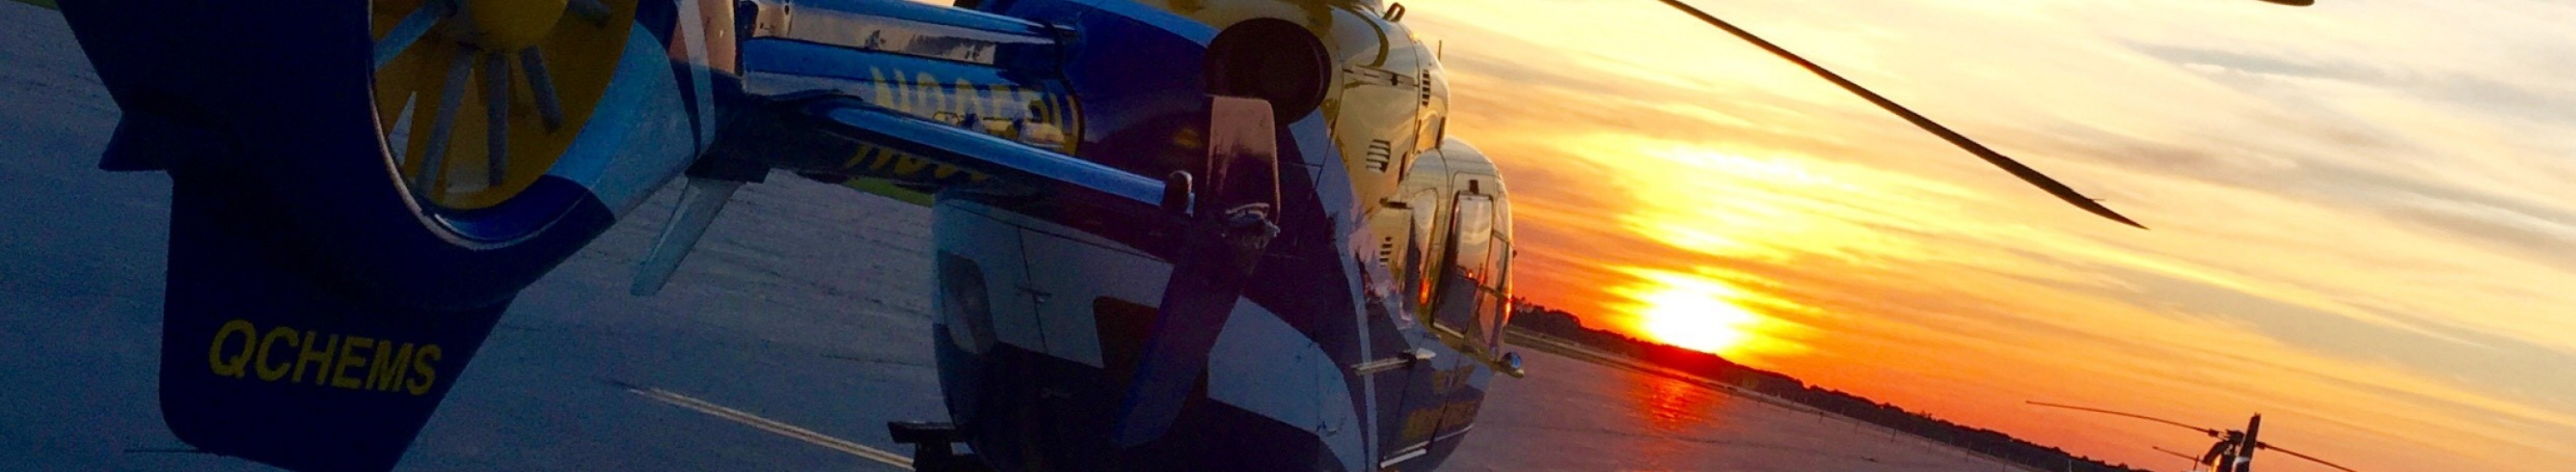 medforce aircraft in sunset